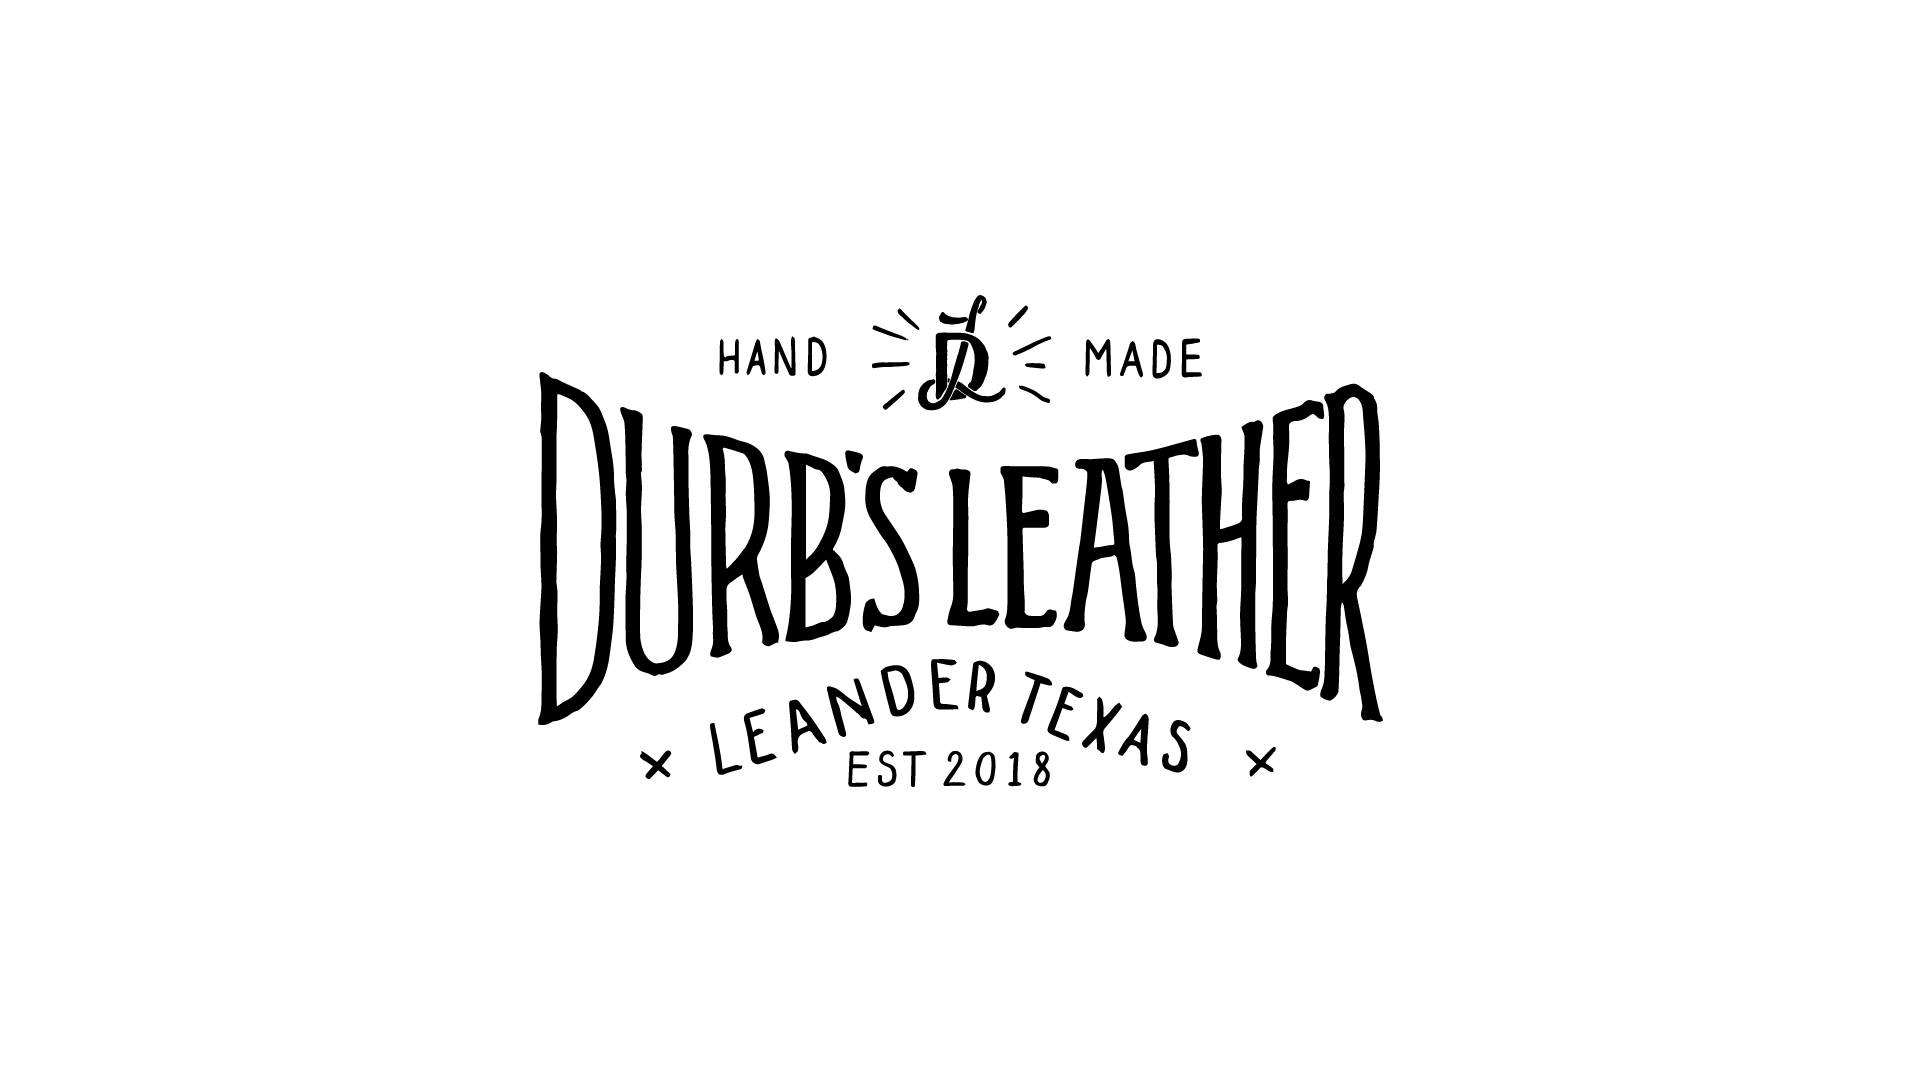 Hand-lettered & Illustrated Logos